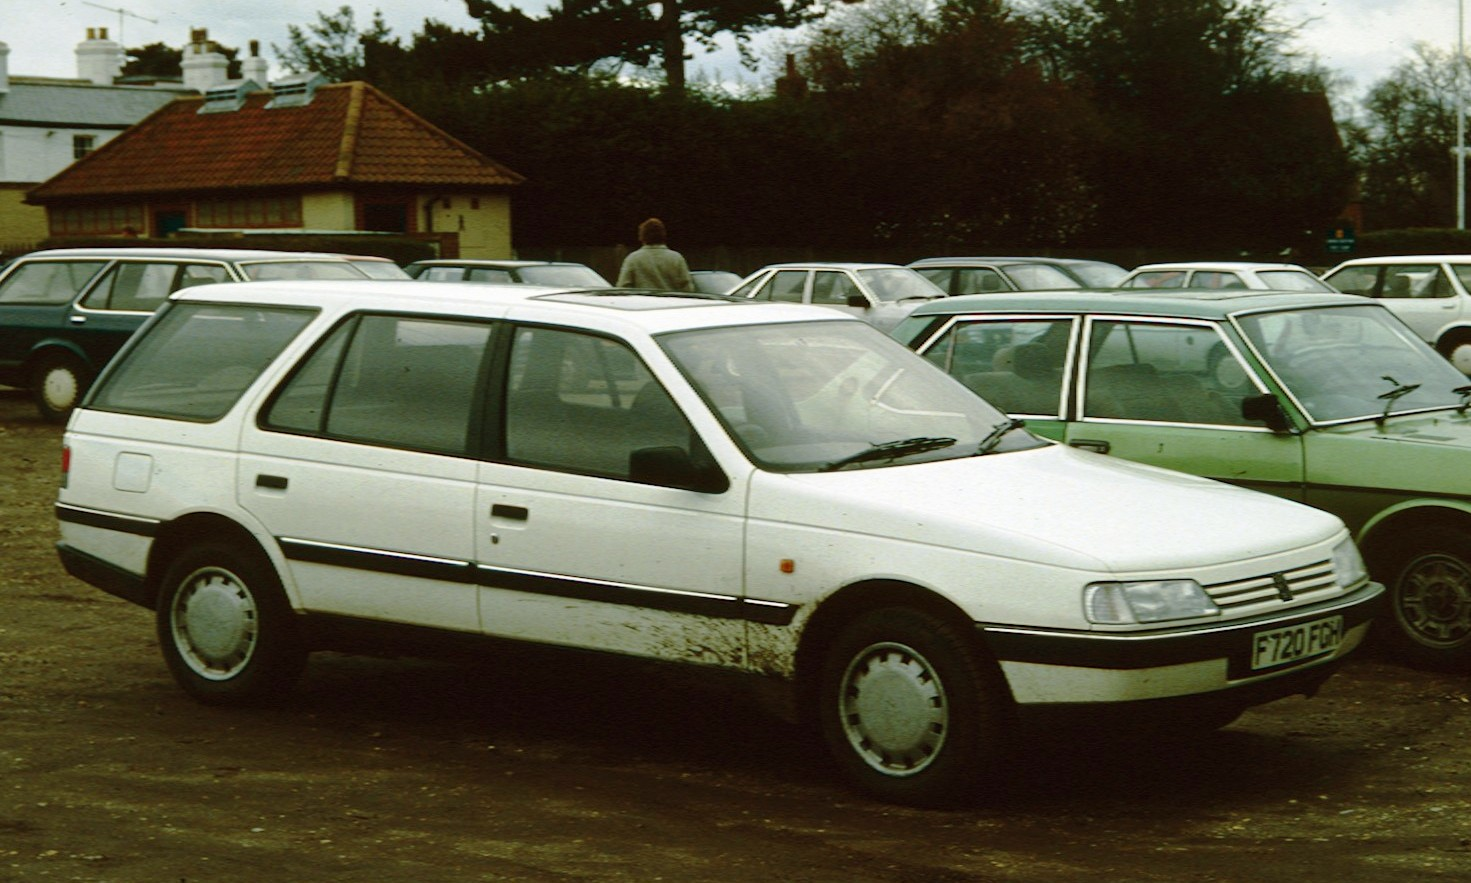 citroen bx usata with Autos Con Historia 23 Peugeot 405 on SM moreover 9570281 Citro C3 ABn Bx 14 Re together with Alfa Romeo 75 in addition BX furthermore BX.